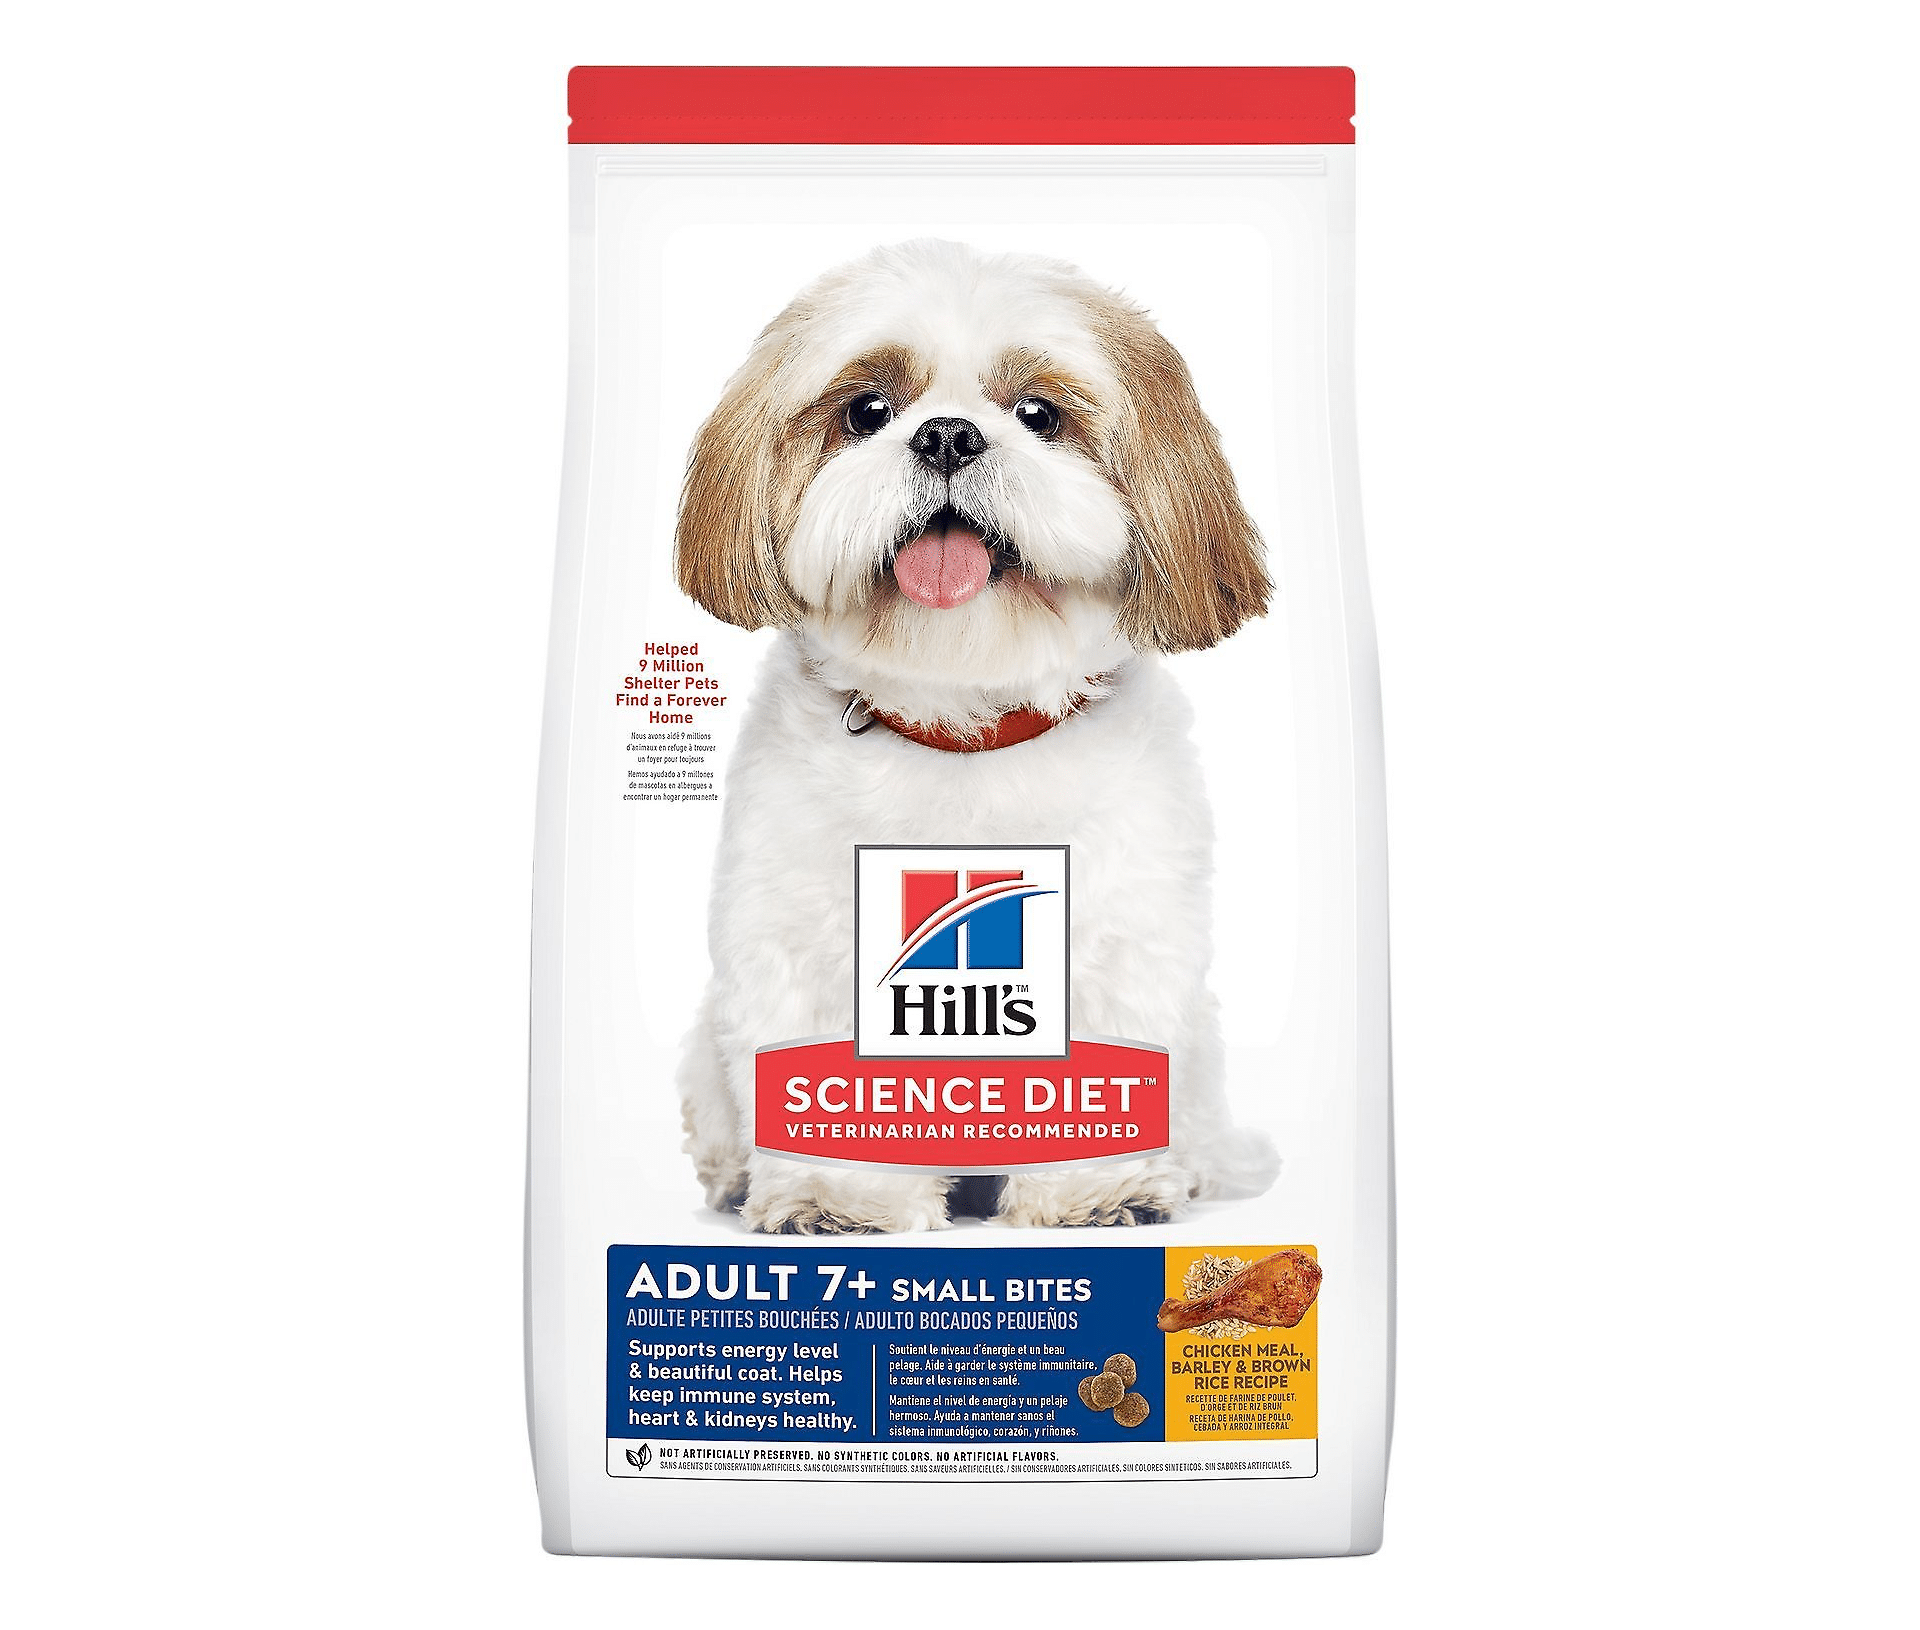 Hill's Science Diet Adult 7+ Small Bites Chicken Meal, Barley & Brown Rice Recipe Dry Dog Food